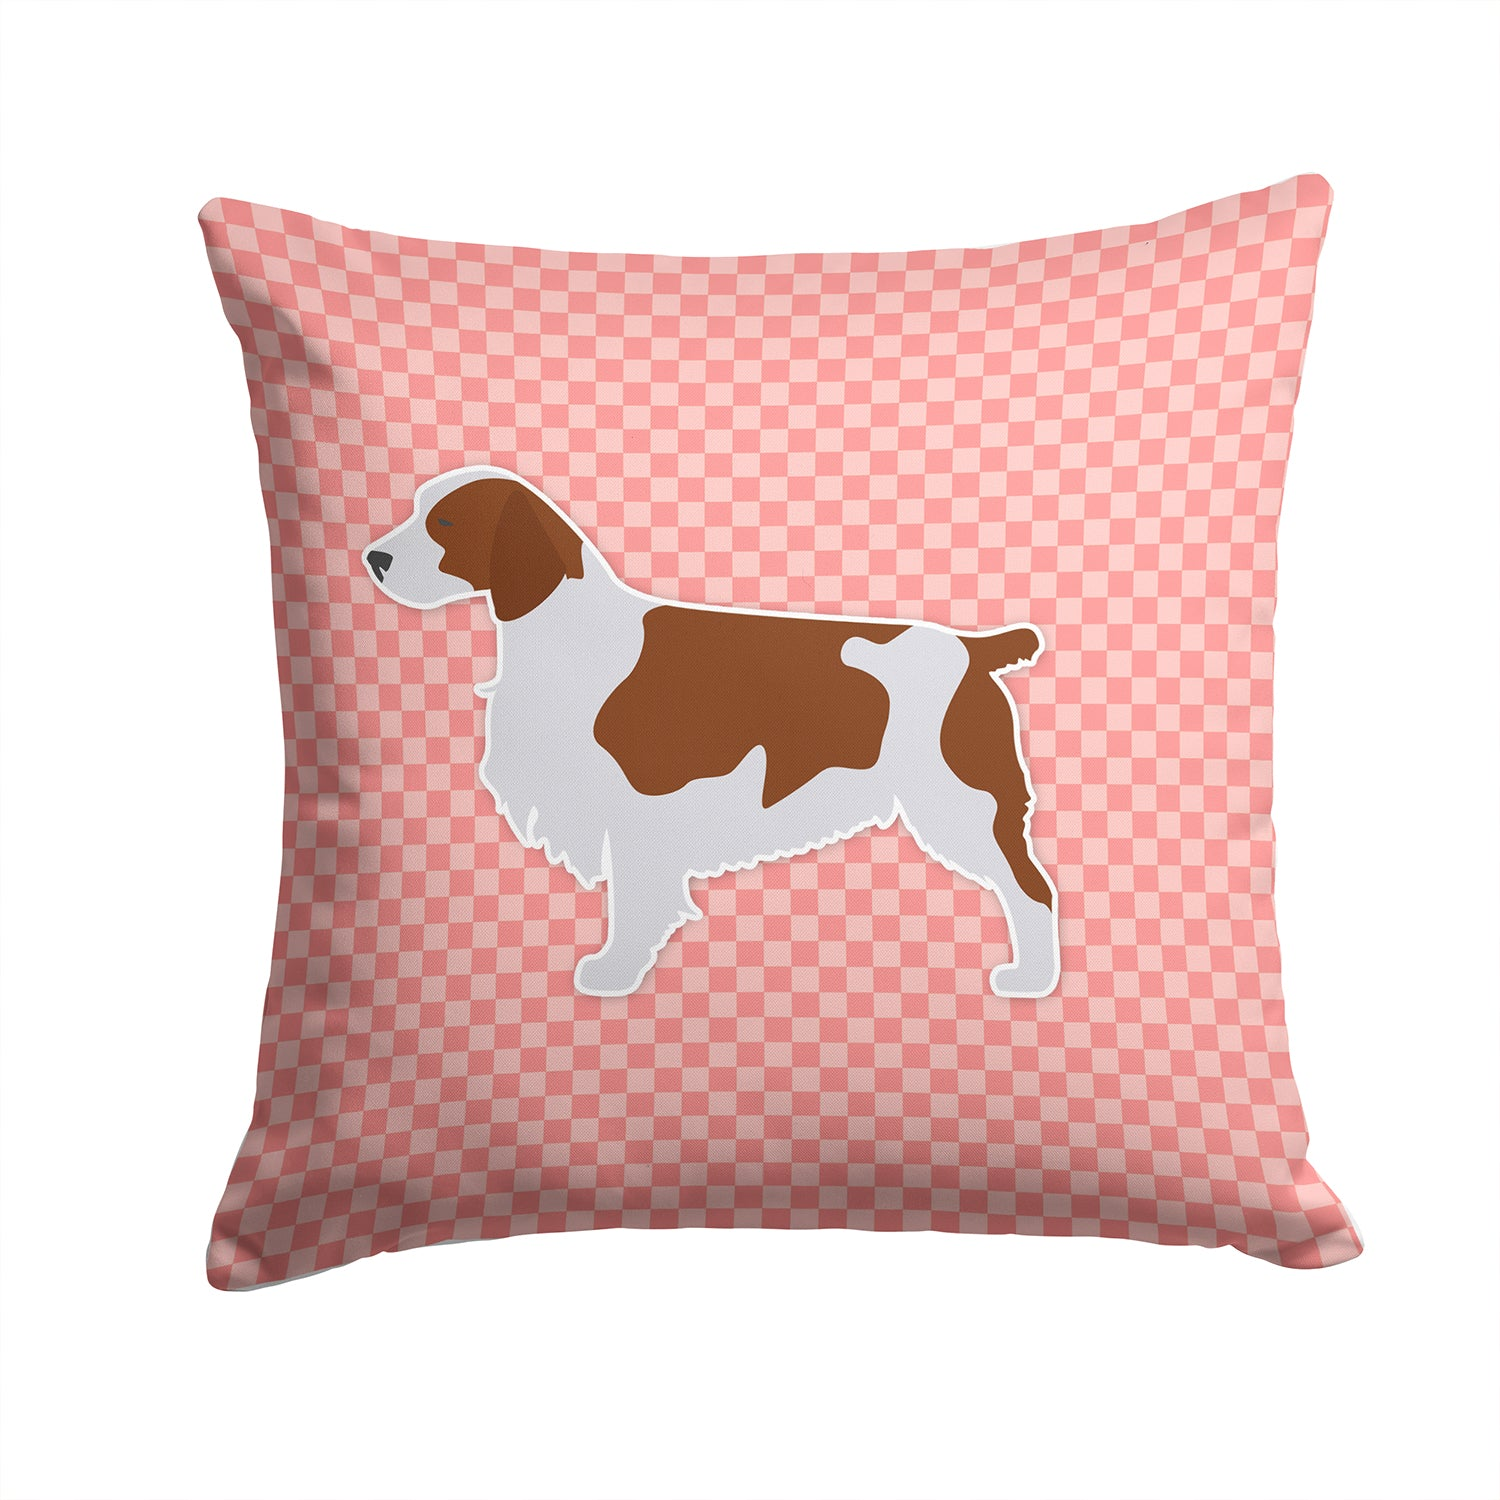 Welsh Springer Spaniel Checkerboard Pink Fabric Decorative Pillow BB3600PW1414 by Caroline's Treasures